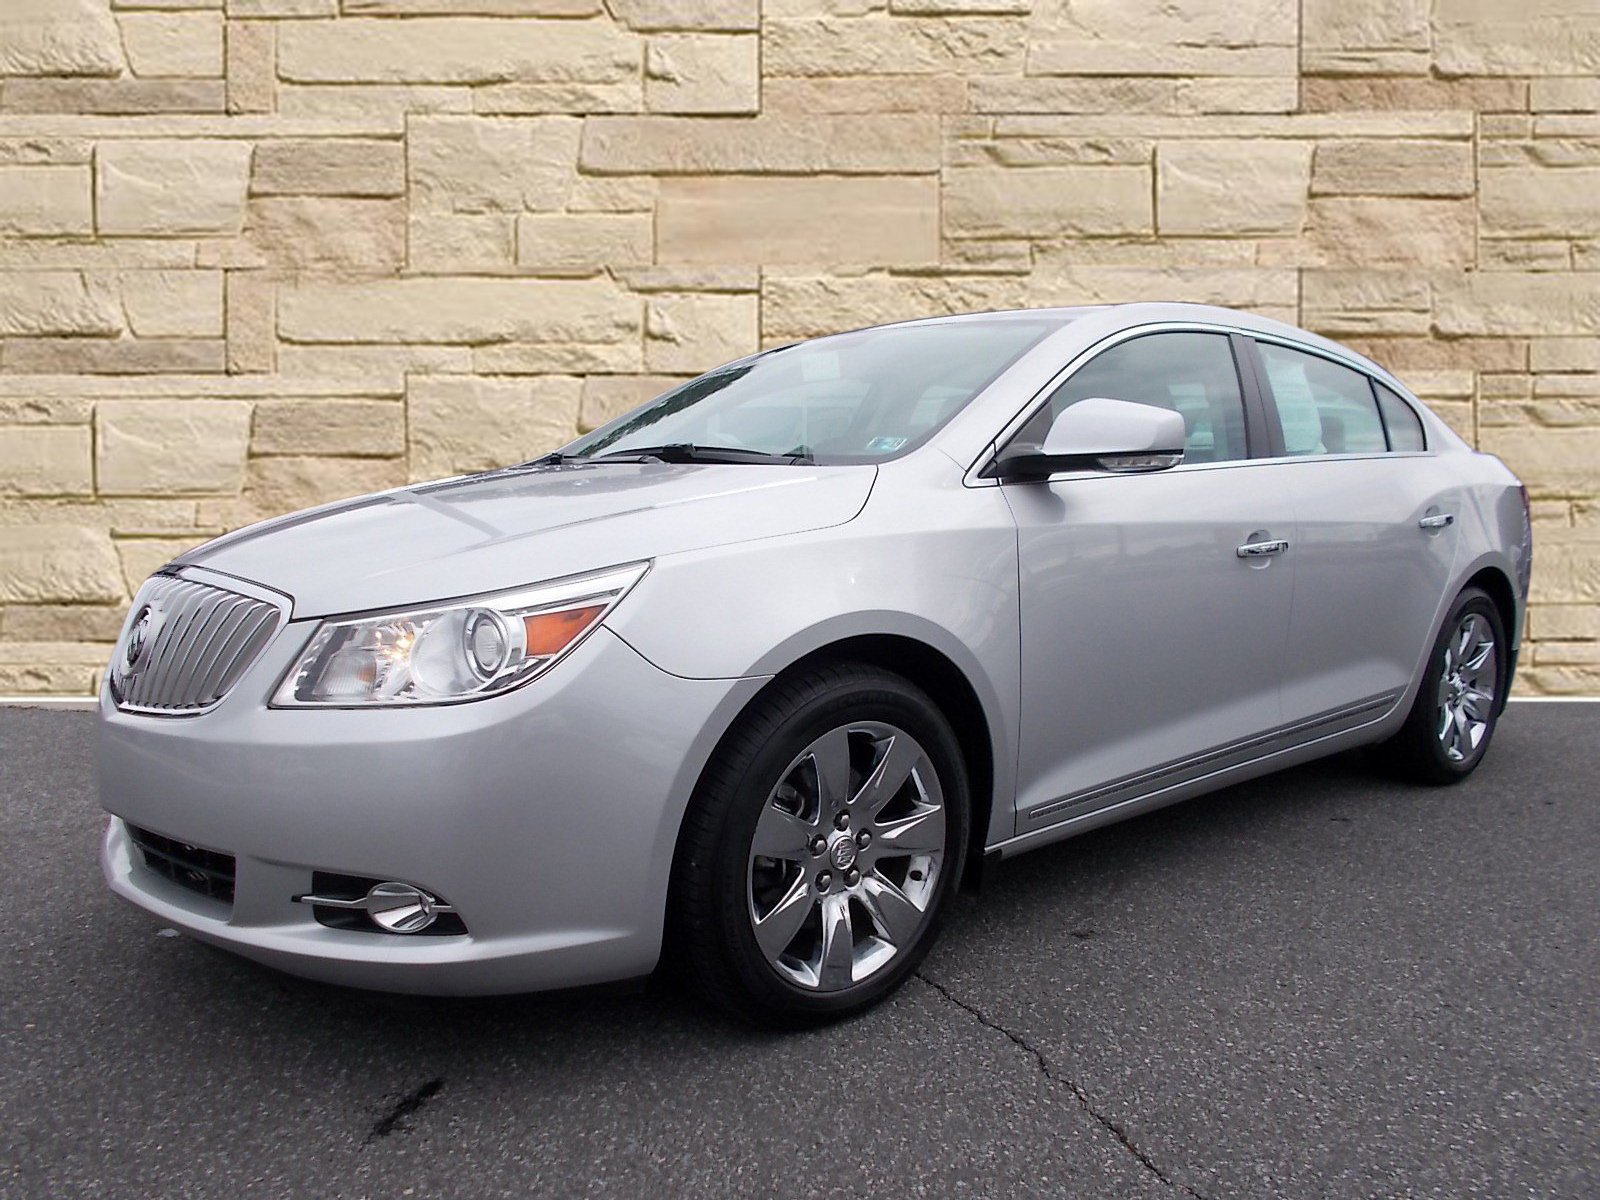 Buick LaCrosse: Care of CDs and DVDs